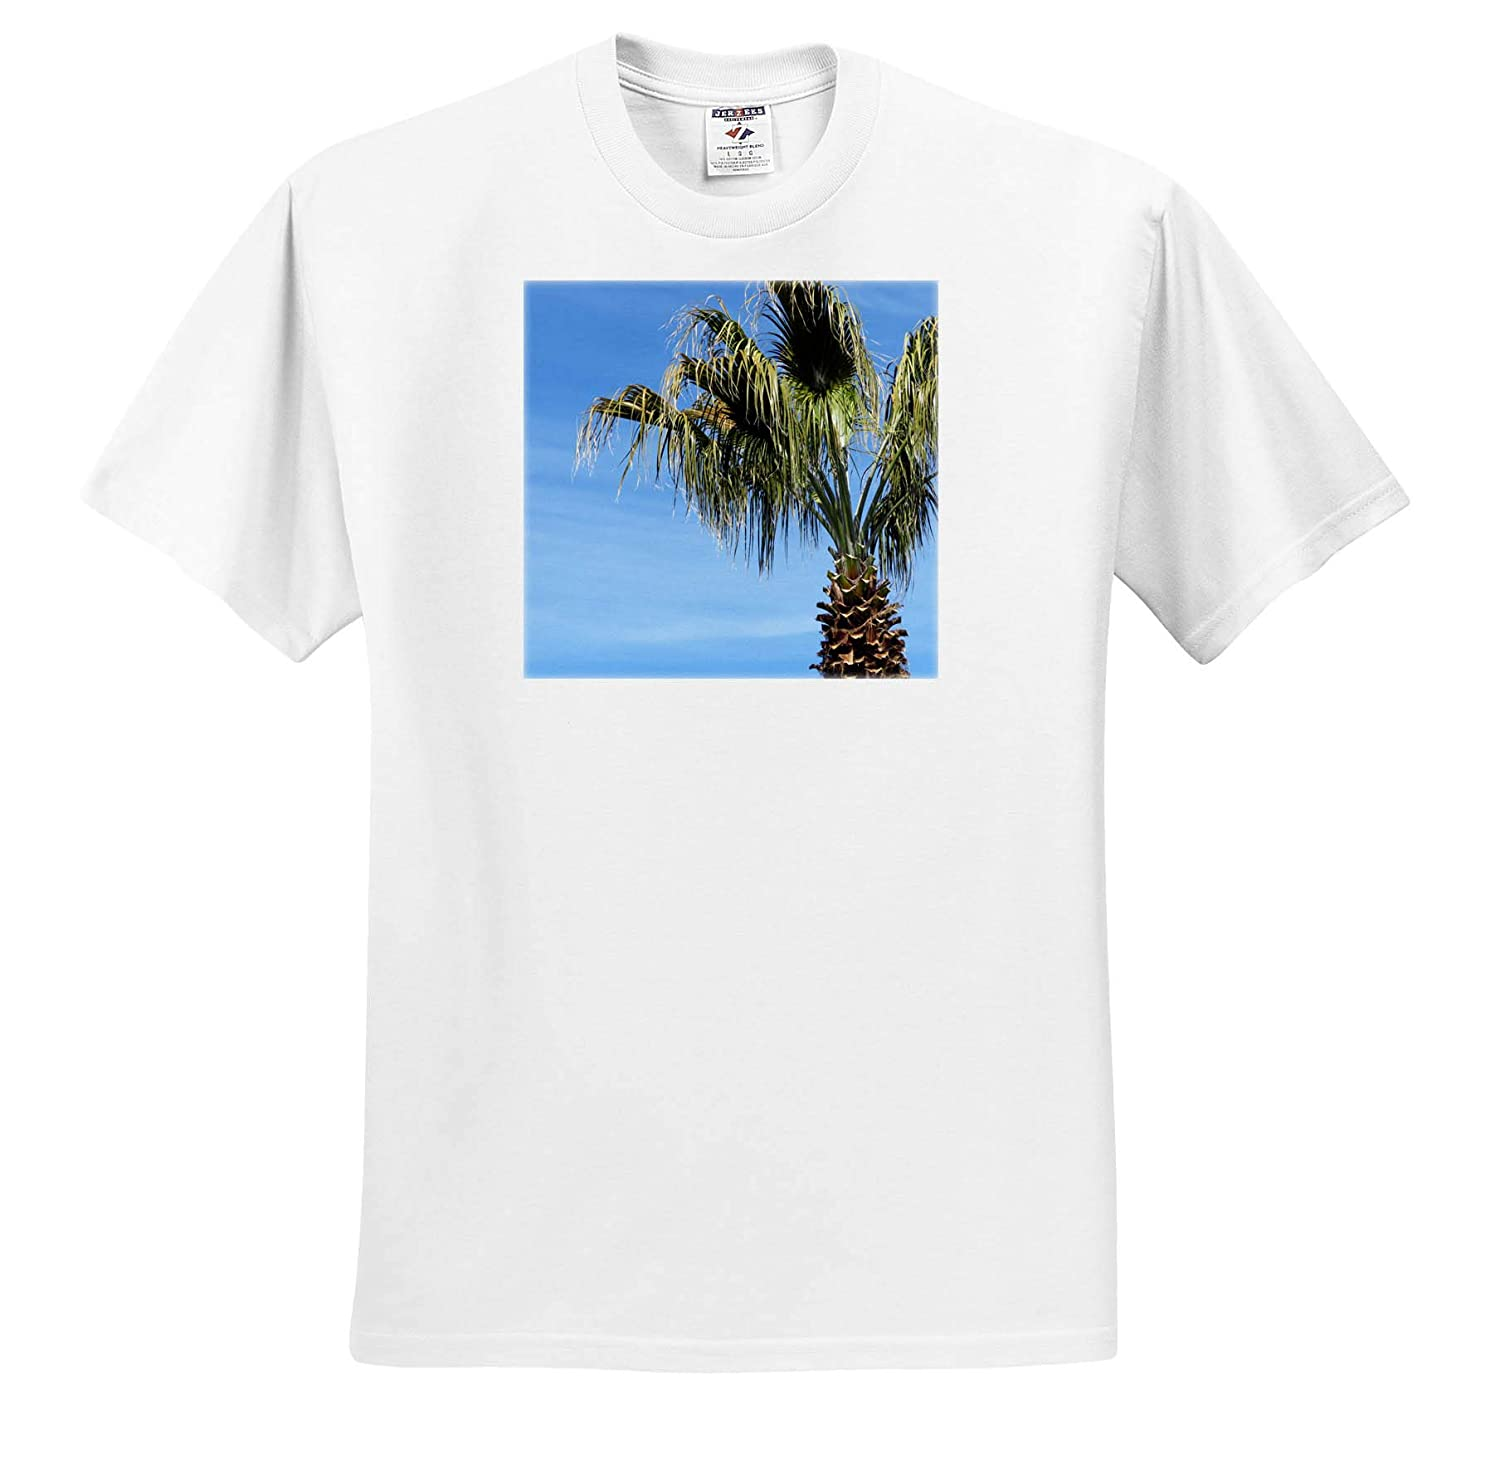 Adult T-Shirt XL 3dRose Jos Fauxtographee- Palm Tree A Palm Tree at The Right top of Photo on a Blue Sky ts/_319615